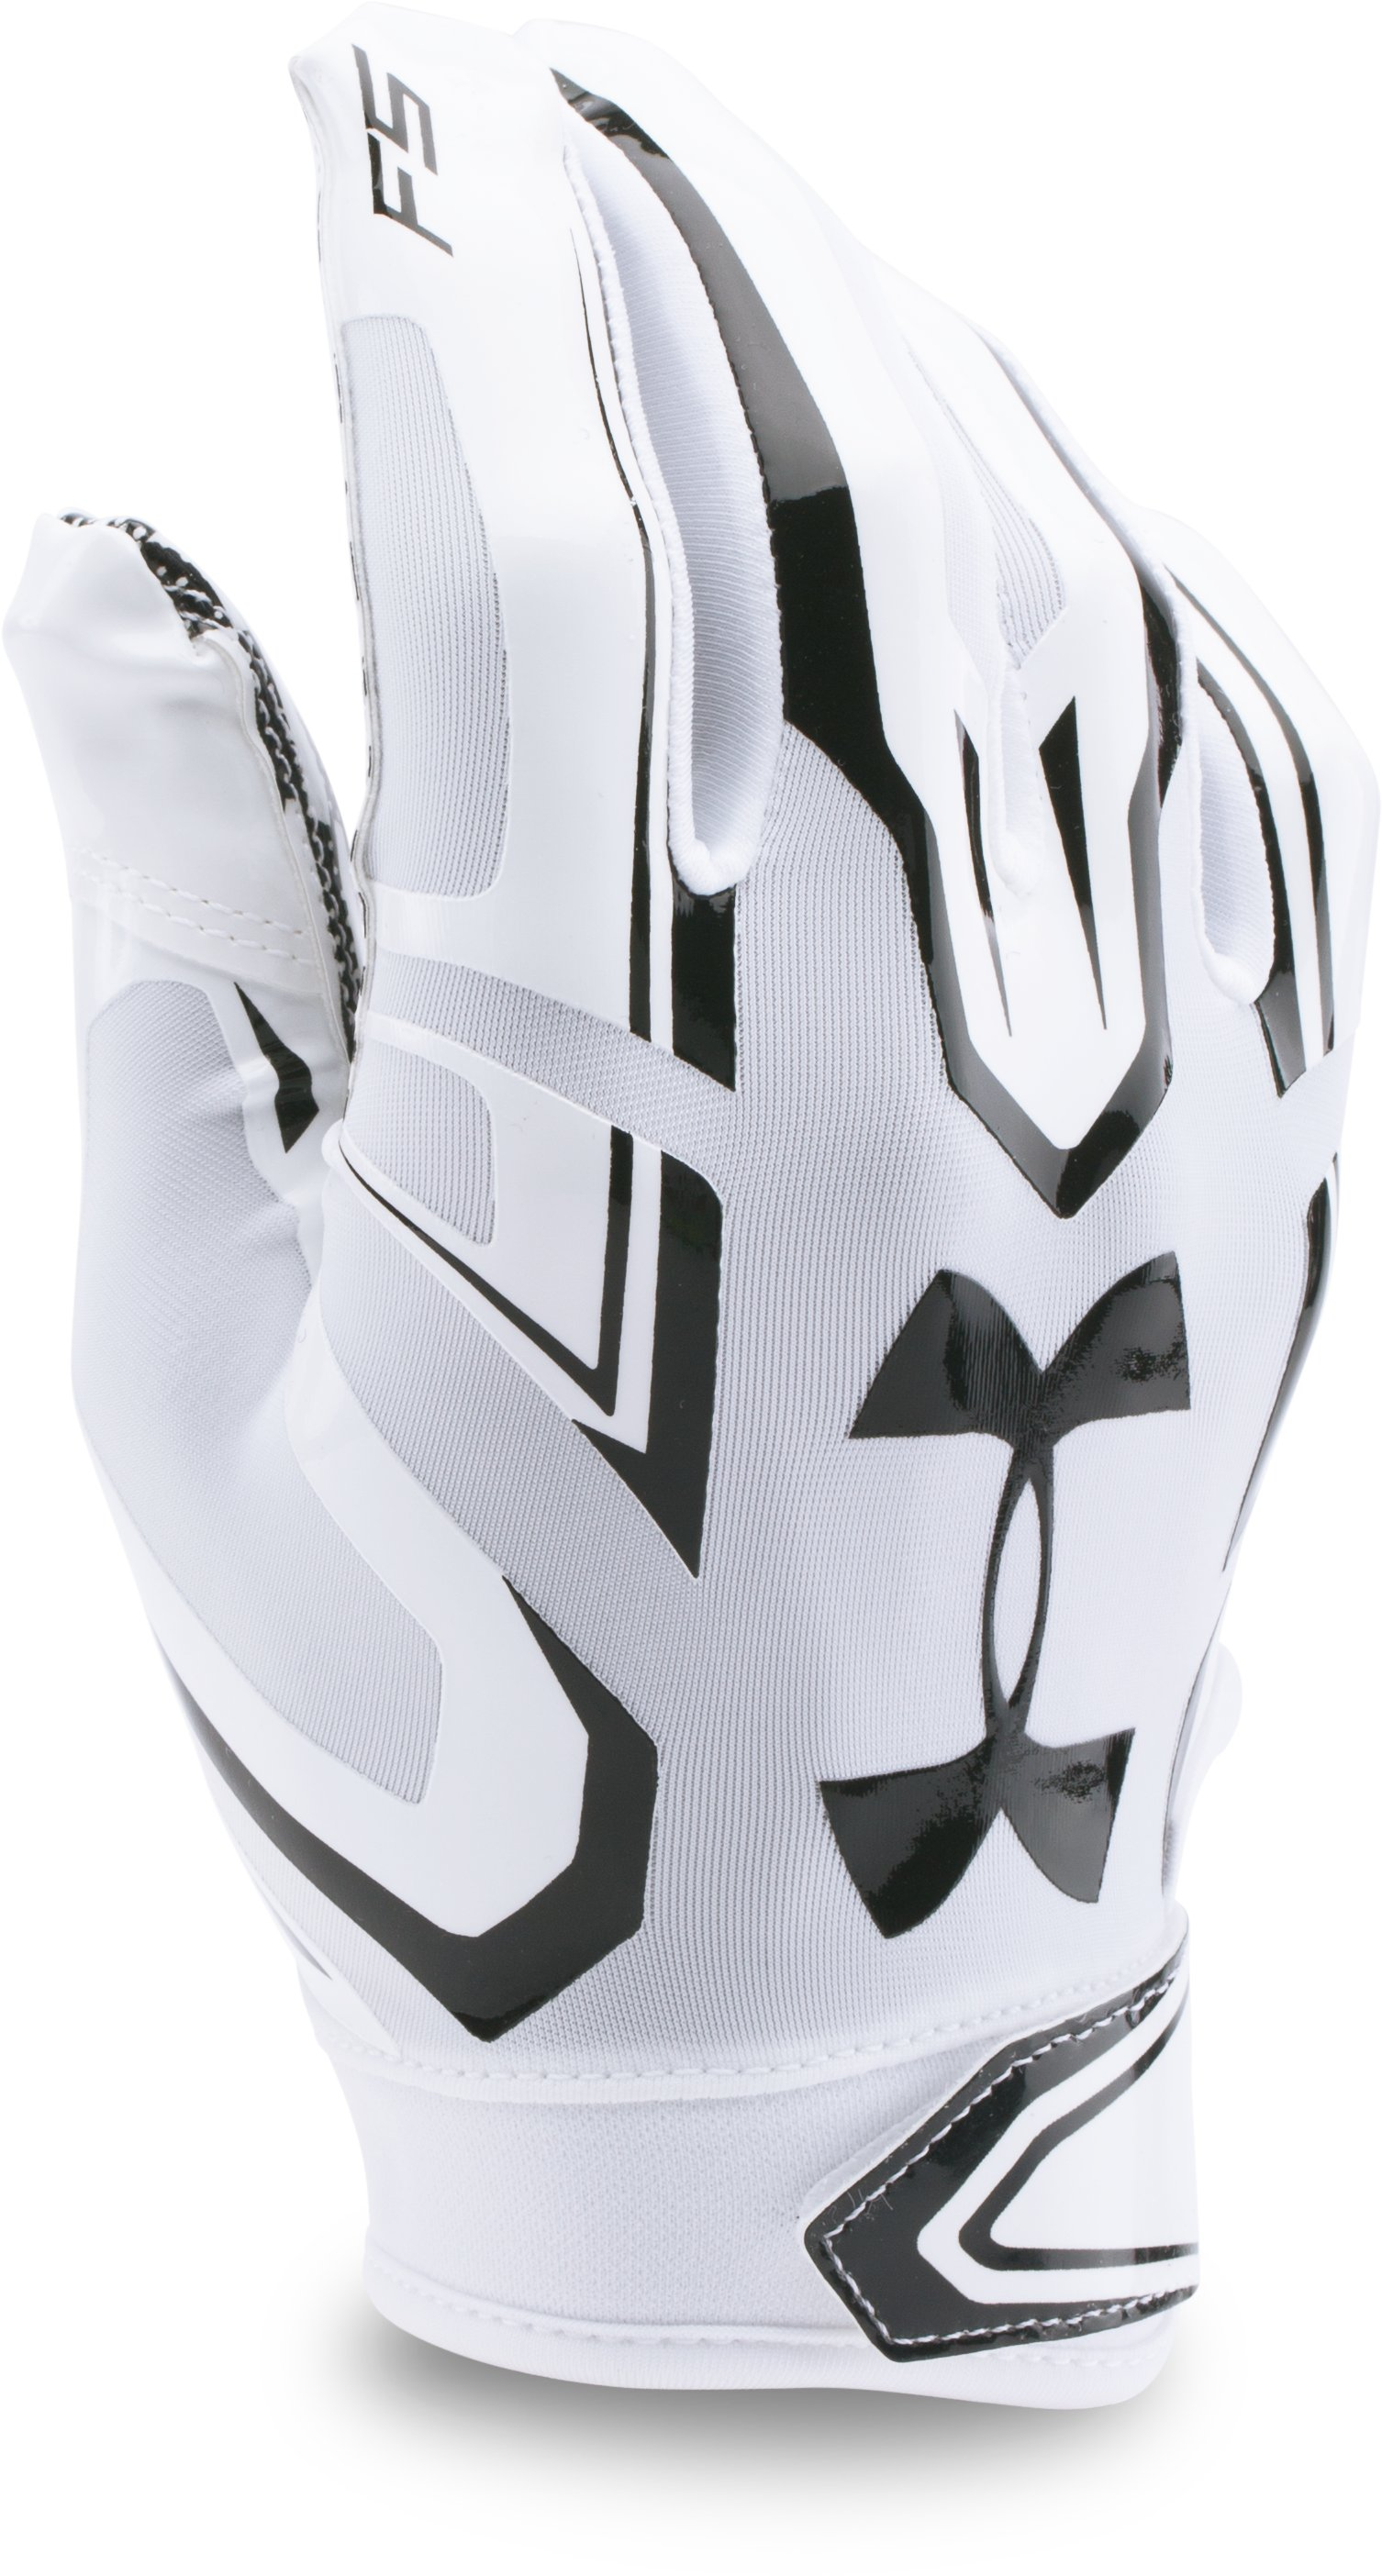 Boys' Pee Wee UA F5 Football Gloves, White